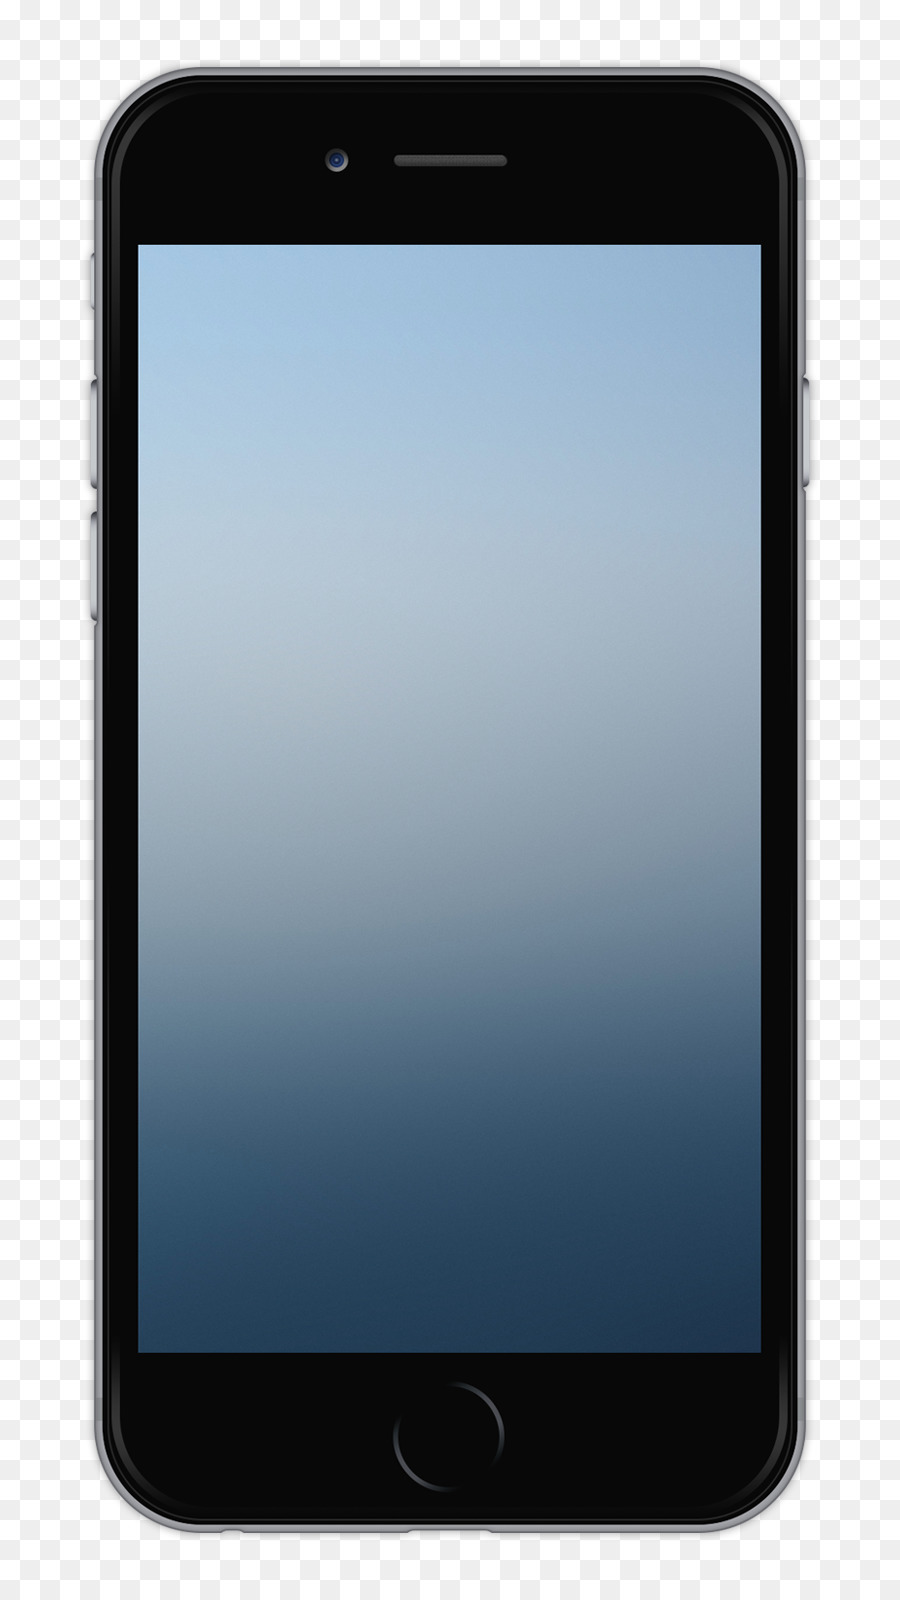 Iphone 8 Png Download 8401600 Free Transparent Iphone 6